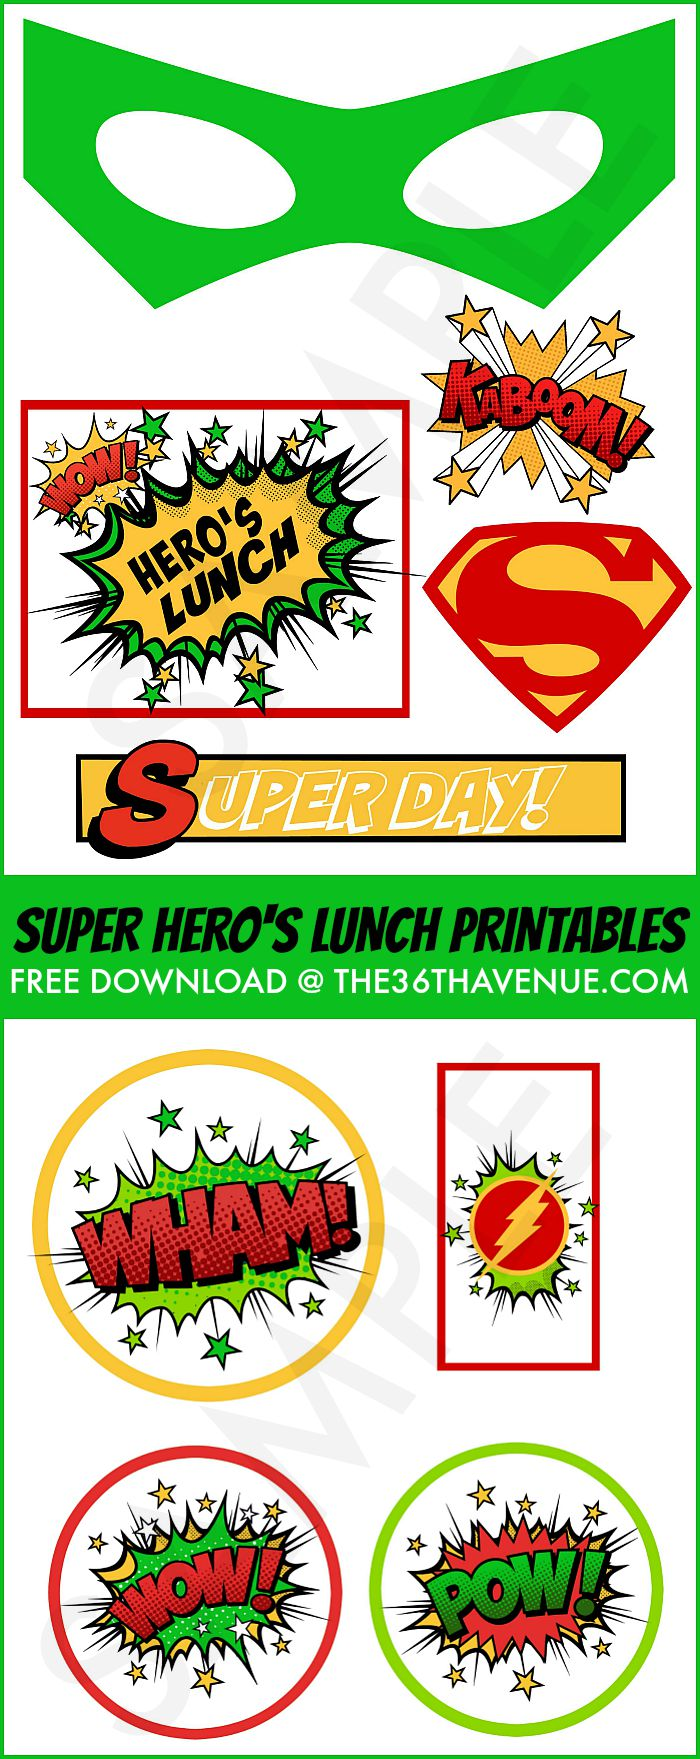 Back to School Lunch Idea and FREE PRINTABLES at the36thavenue.com Super cute for kids and teachers!